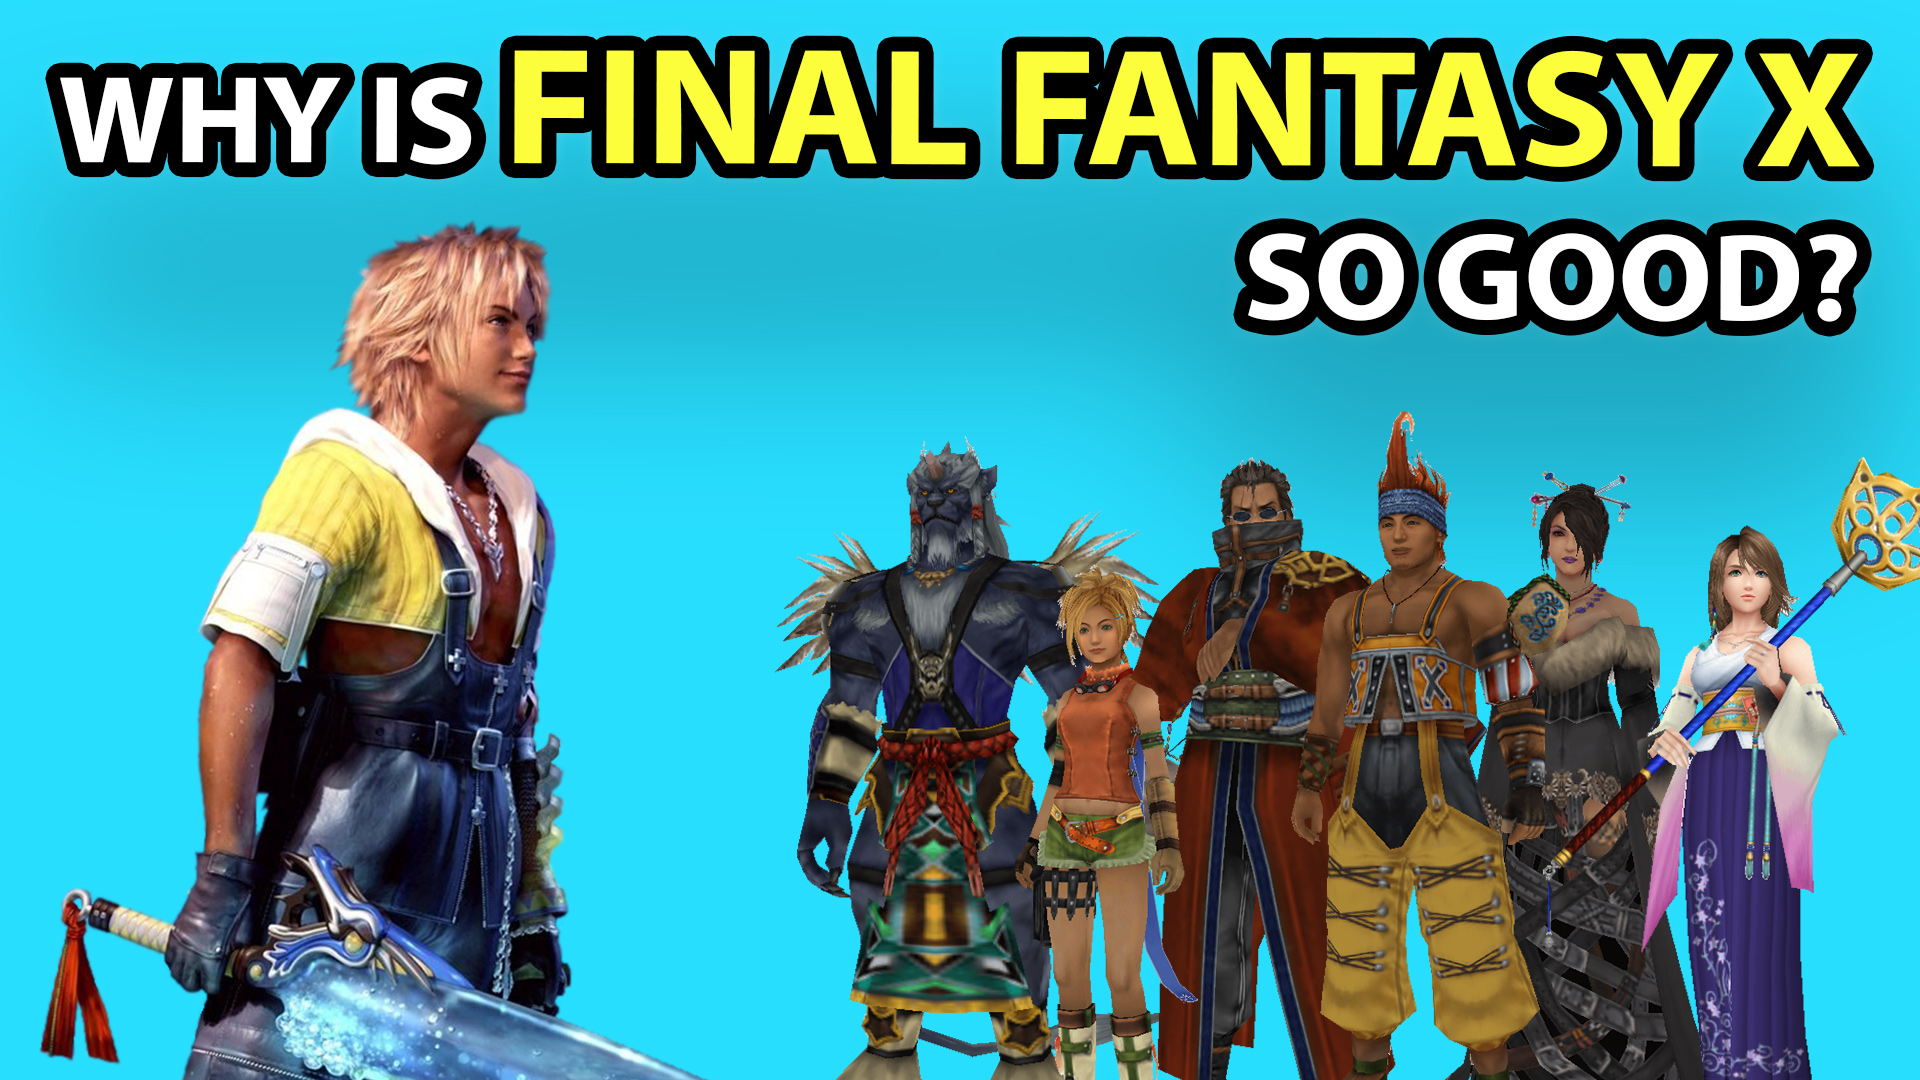 T Time, video games, Final Fantasy, Final Fantasy X, Final Fantasy 10, Final Fantasy X-2, Tidus, Yuna, HD, remaster, PS2, PS4, Square Enix